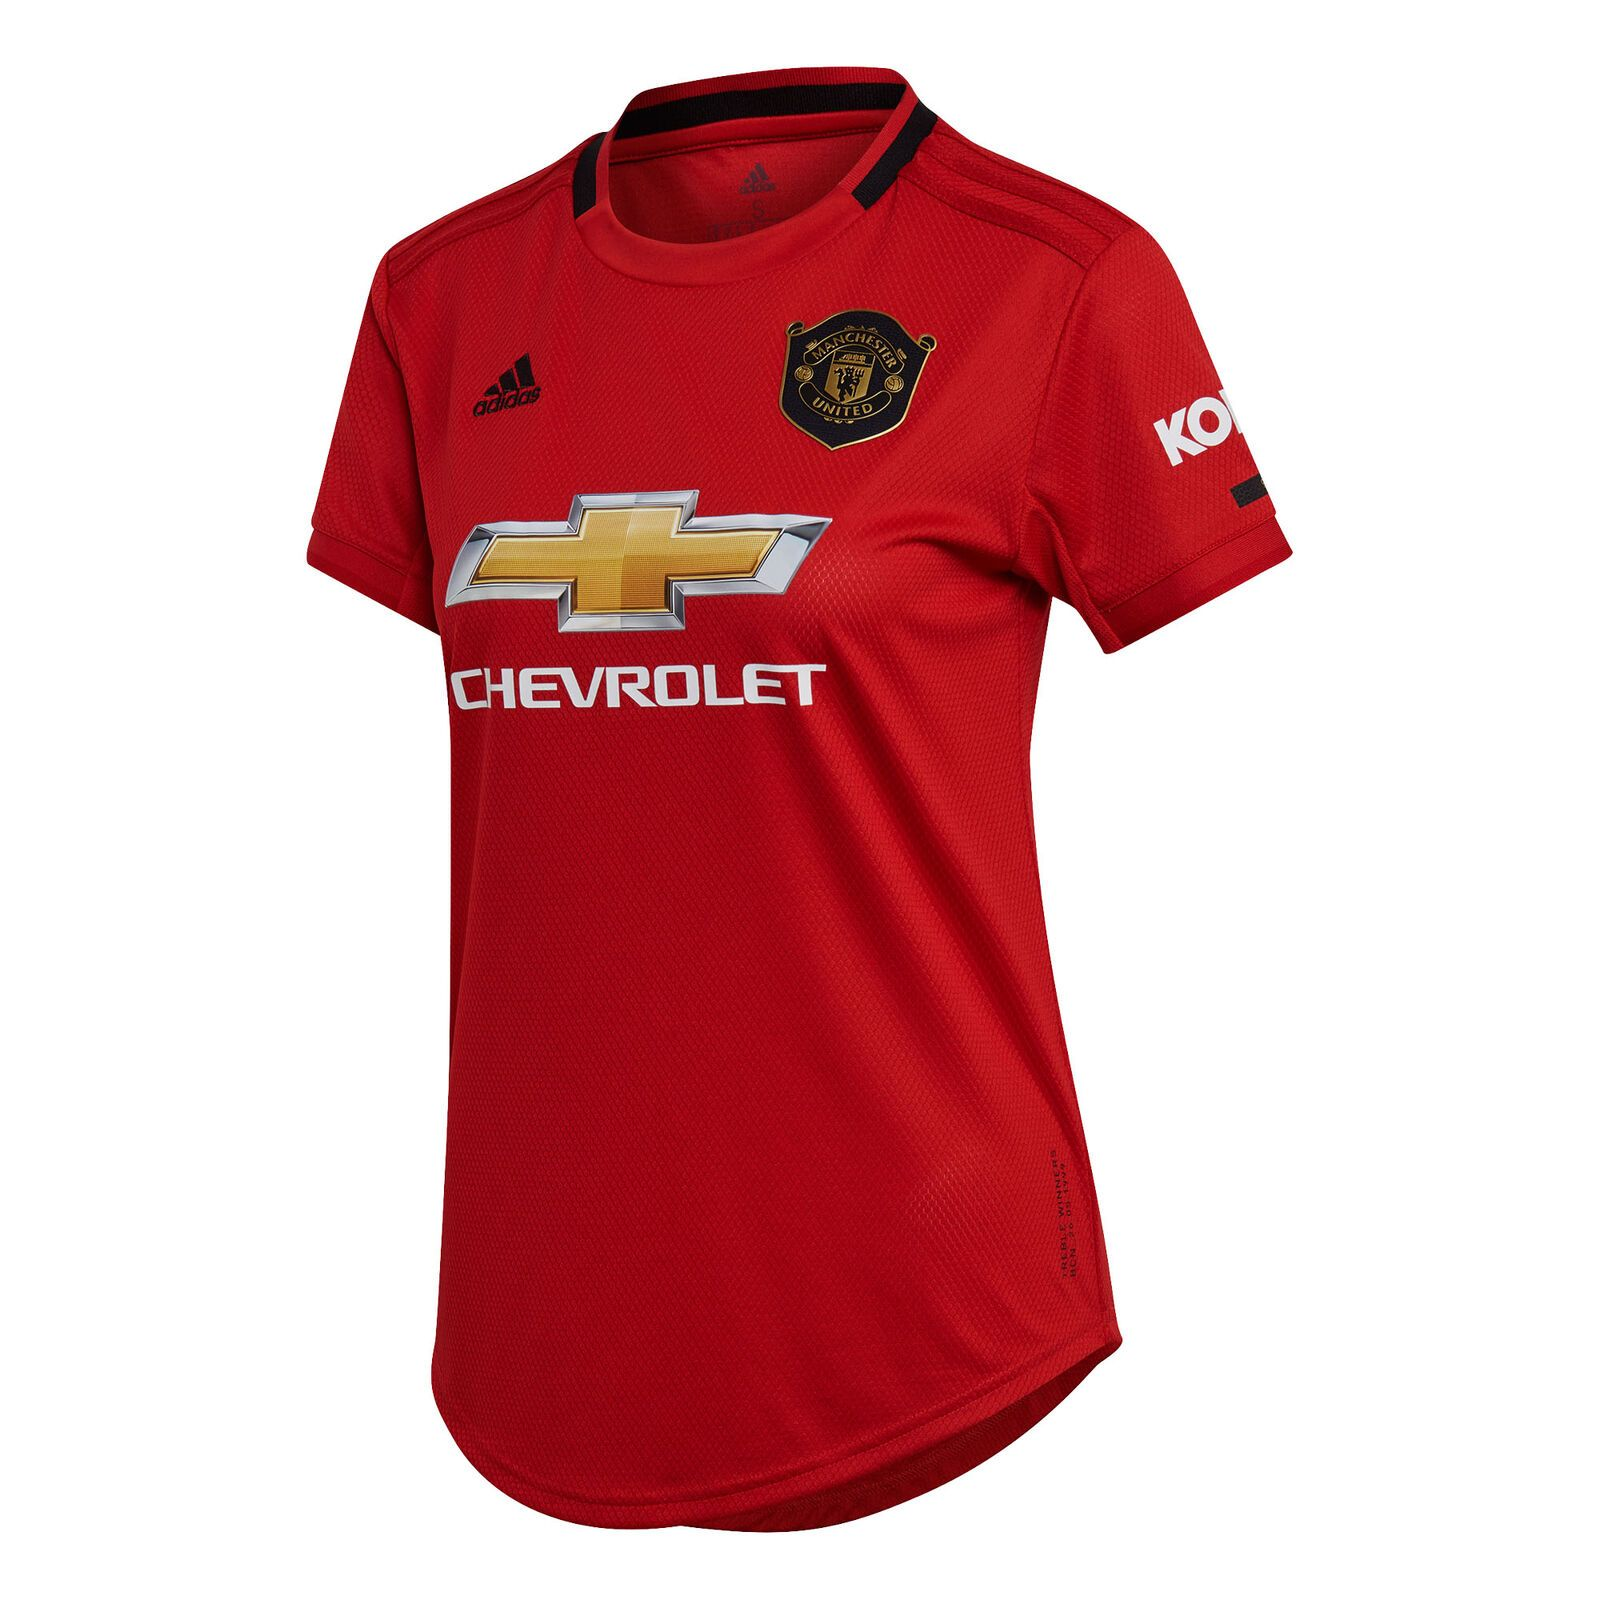 Adidas Manchester United 2019 20 Womens Home Football Jersey Shirt Red Ebay Manchester United Soccer Football Jersey Shirt Manchester United